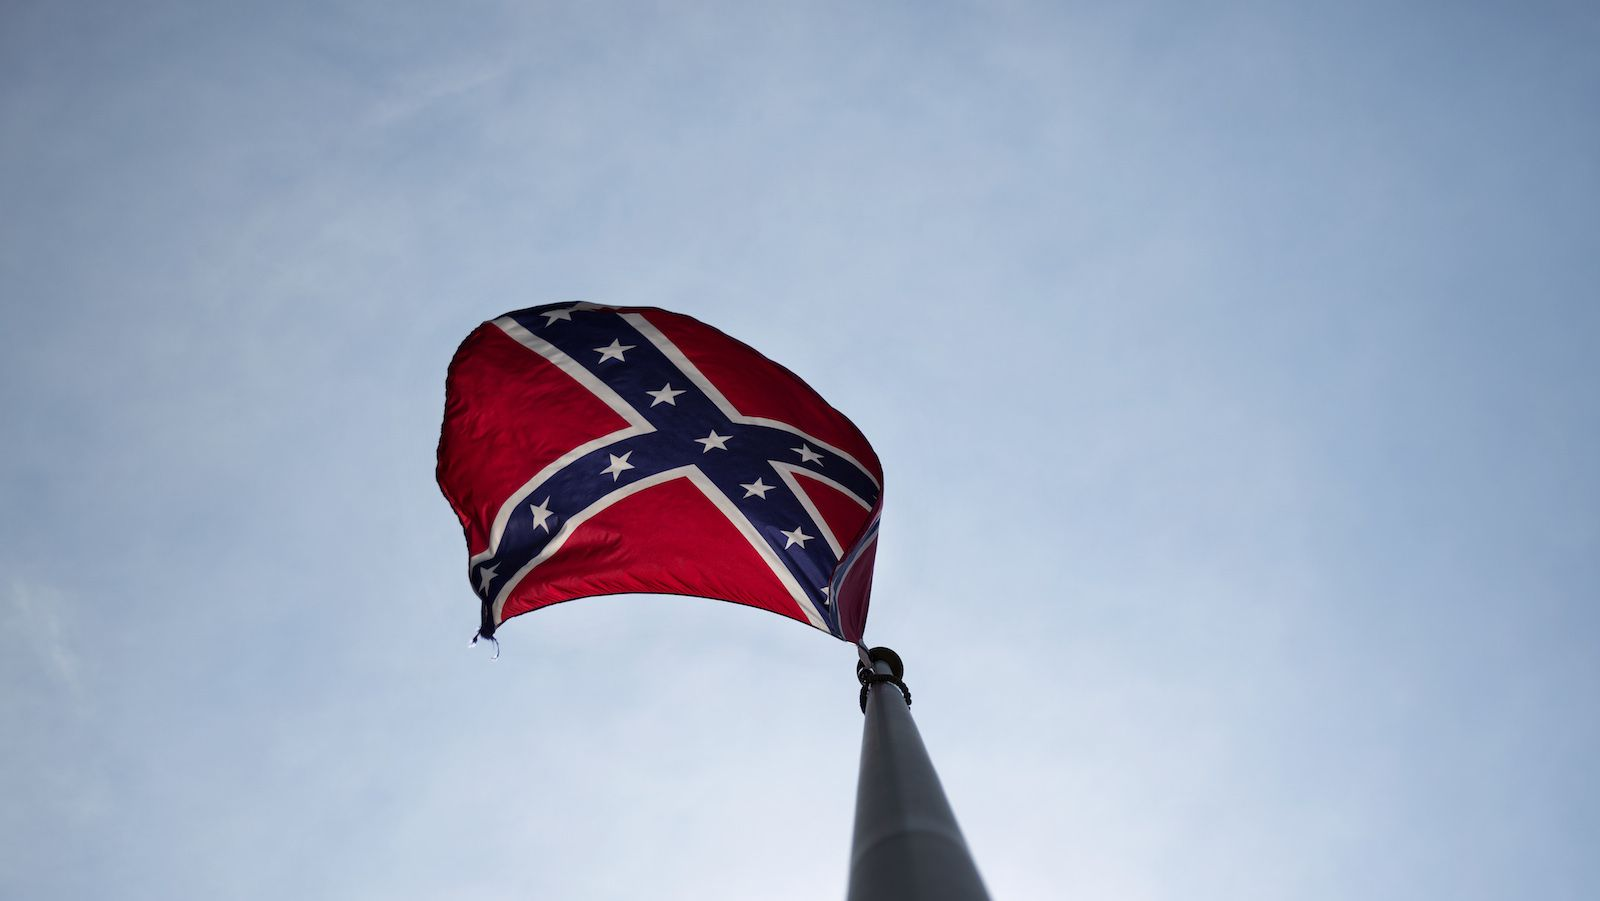 "A Confederate flag flies at the base of Stone Mountain Tuesday, June 30, 2015, in Stone Mountain, Ga. At Georgia's iconic Stone Mountain - where the Confederacy is enshrined in a giant bas-relief sculpture, the Ku Klux Klan once held notorious cross-burnings and rebel battle flags still wave prominently, officials are considering what to do about those flags. The park, which now offers family-friendly fireworks and laser light shows, is readying its ""Fantastic Fourth Celebration"" Thursday through Sunday, and multiple Confederate flag varieties are still displayed at the mountain's base."